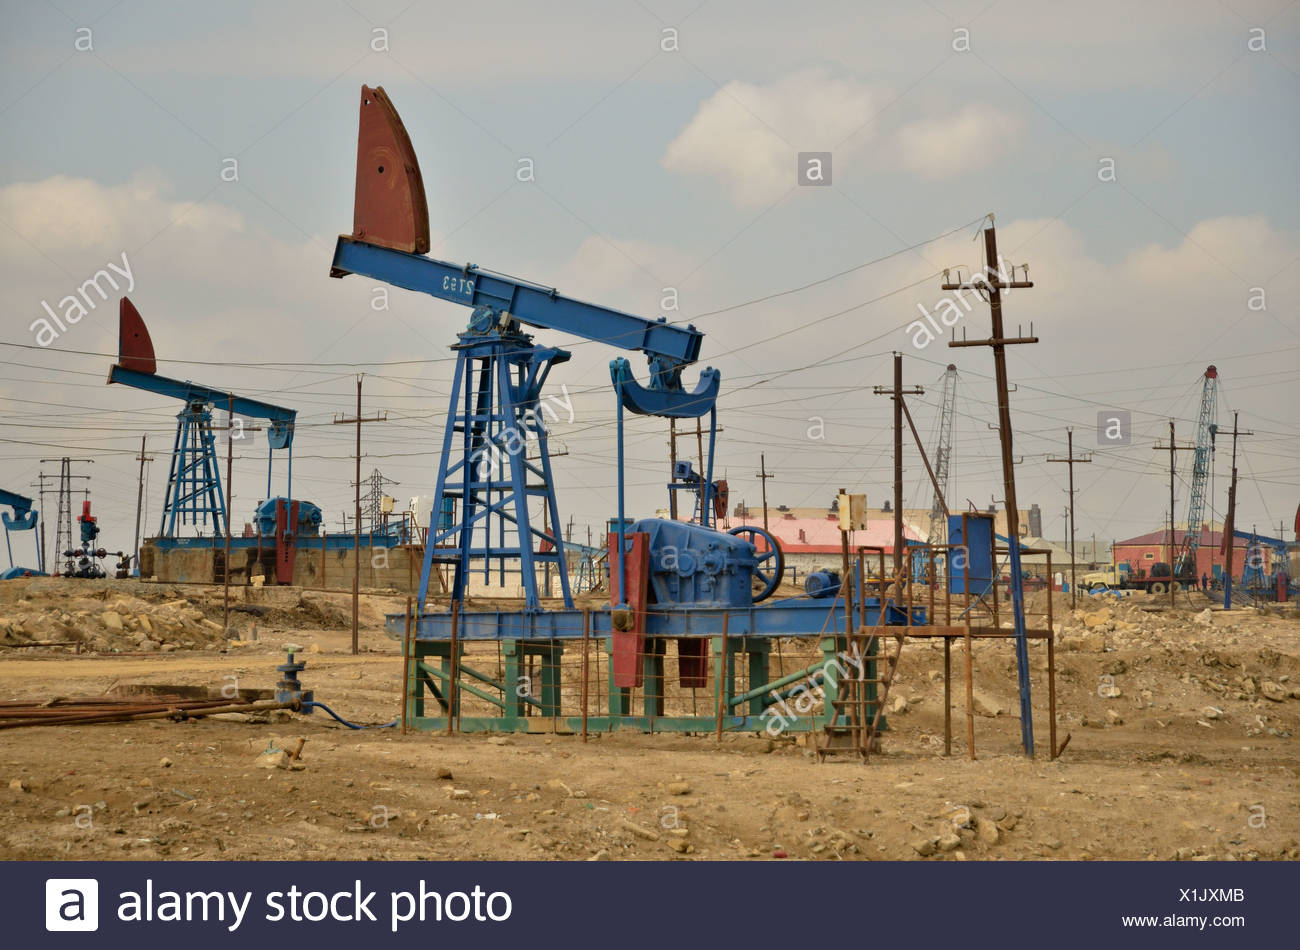 Oil field in Baku on the Abseron Peninsula on the Caspian Sea, Baku, Azerbaijan, Caucasus, Middle East, Asia - Stock Image